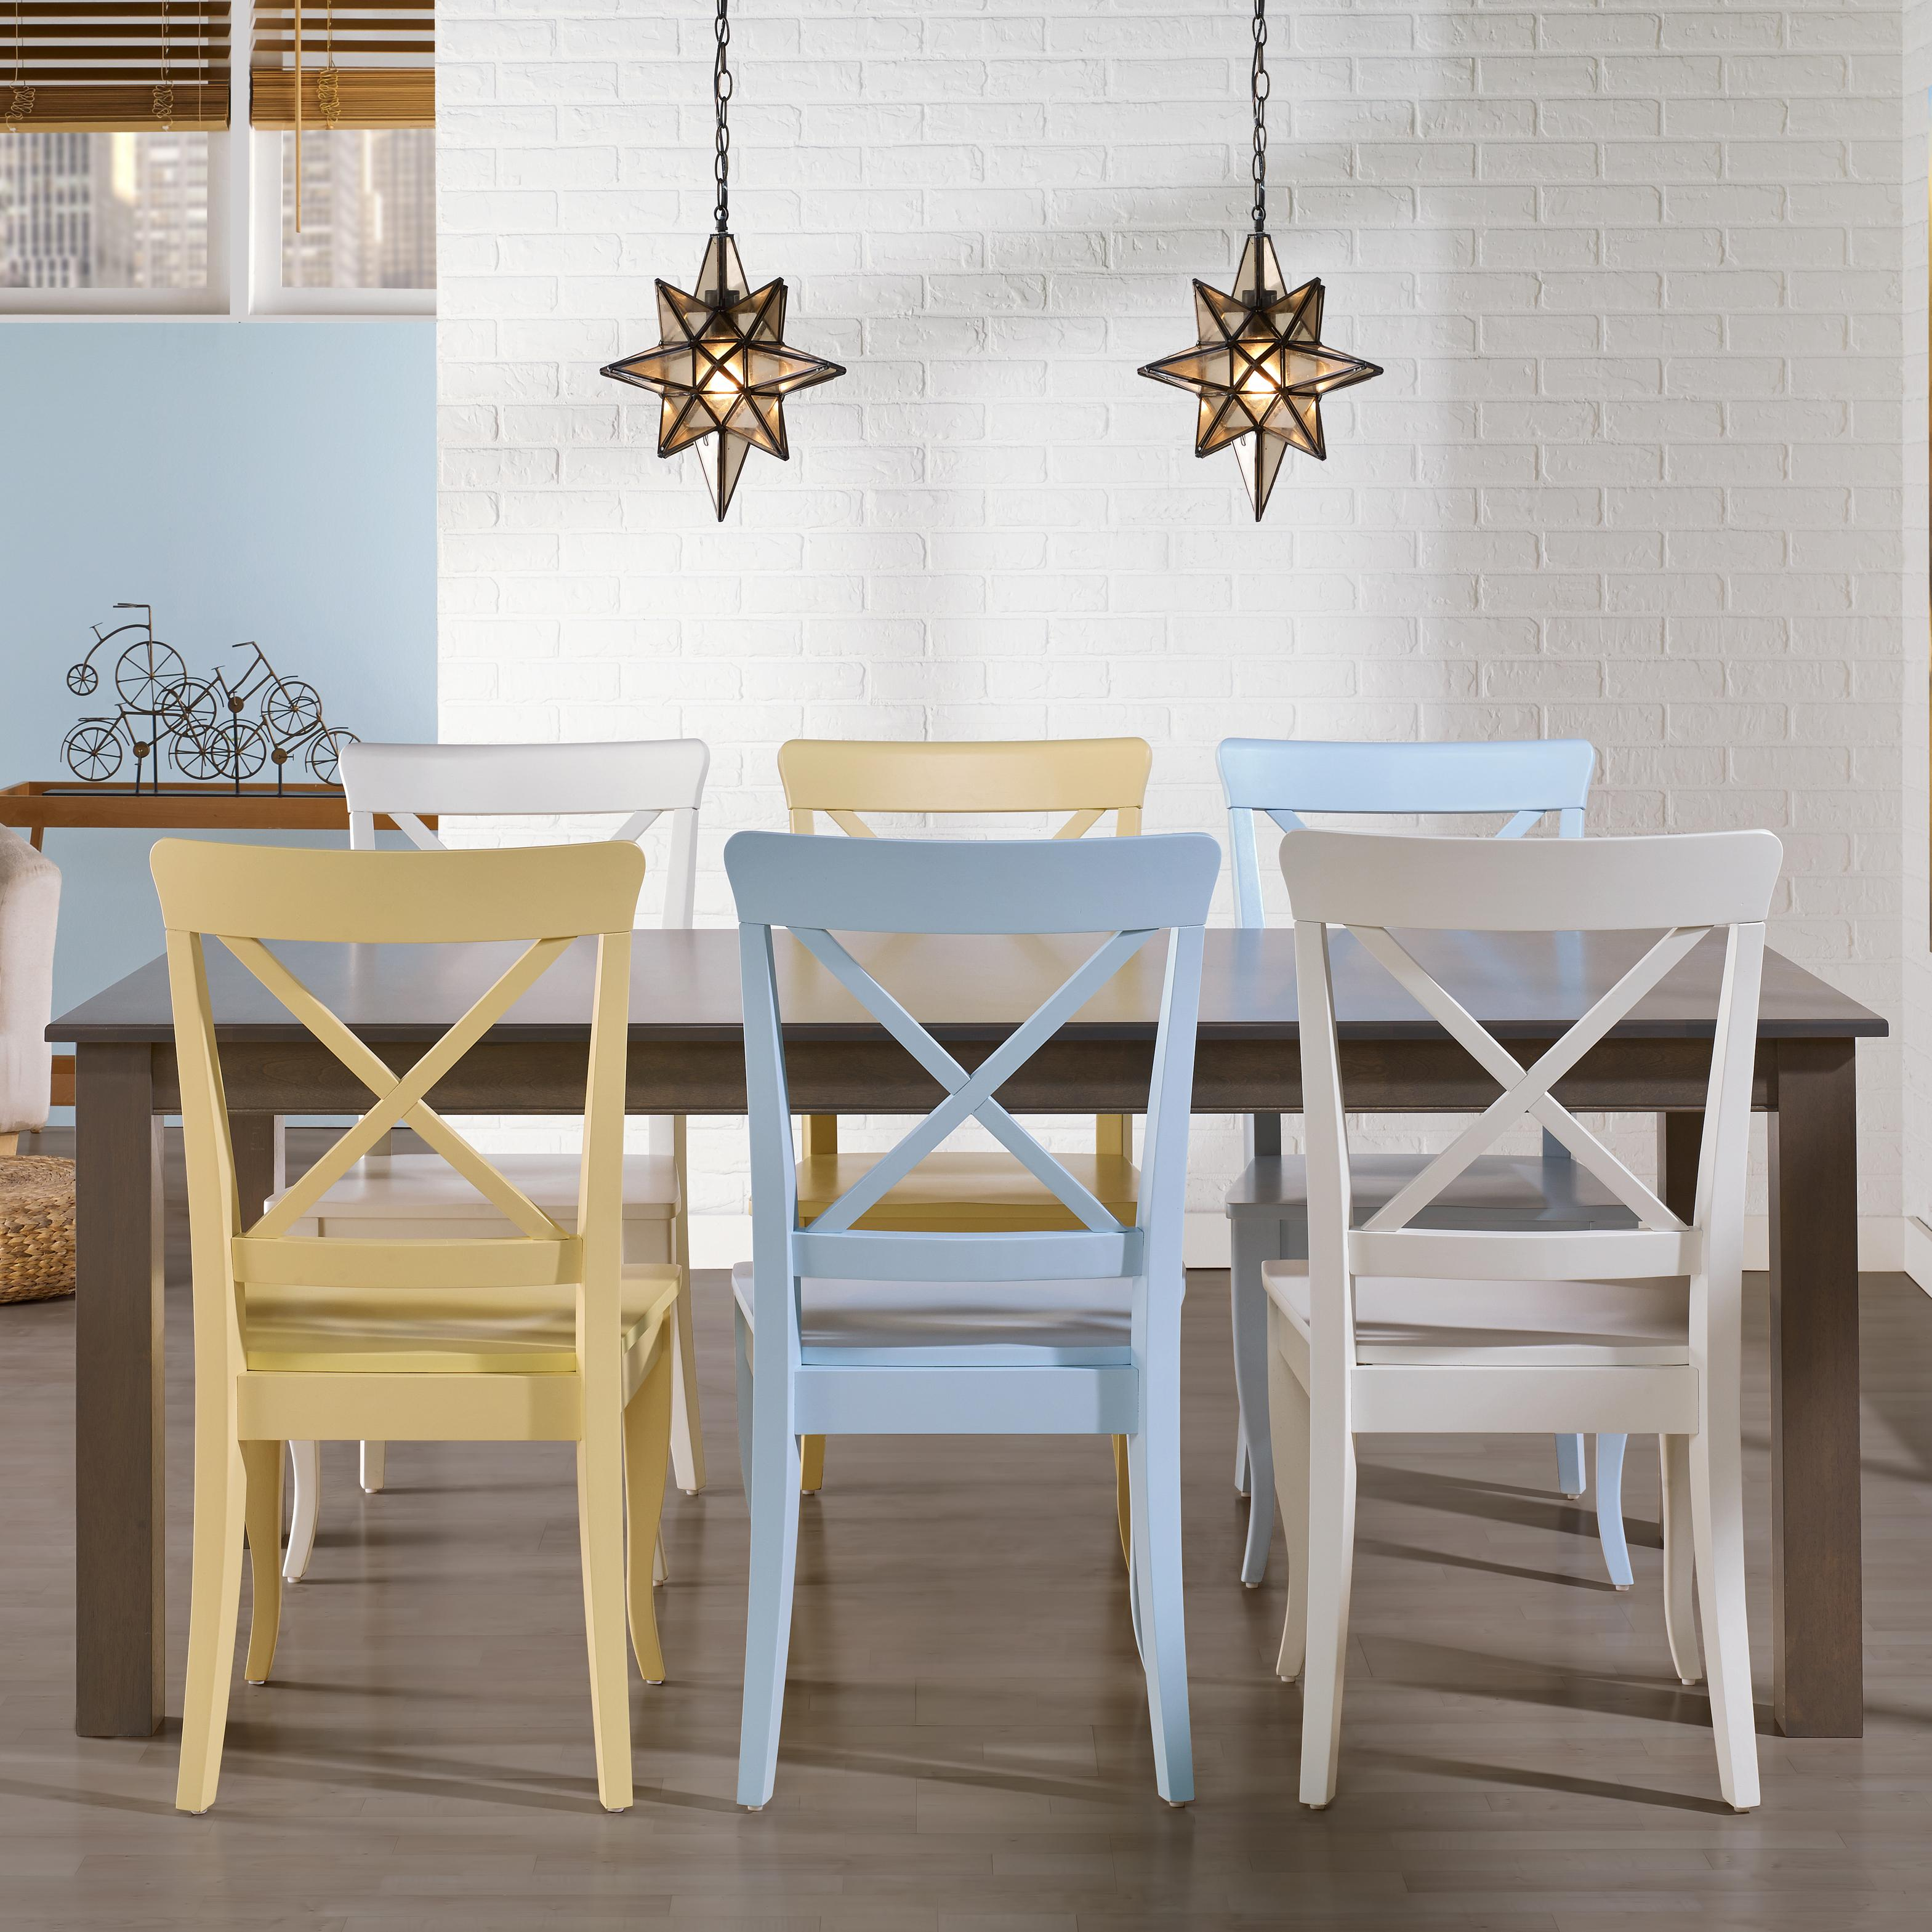 Gourmet - Custom Dining <b>Customizable</b> Rectangular Table by Canadel at Dinette Depot